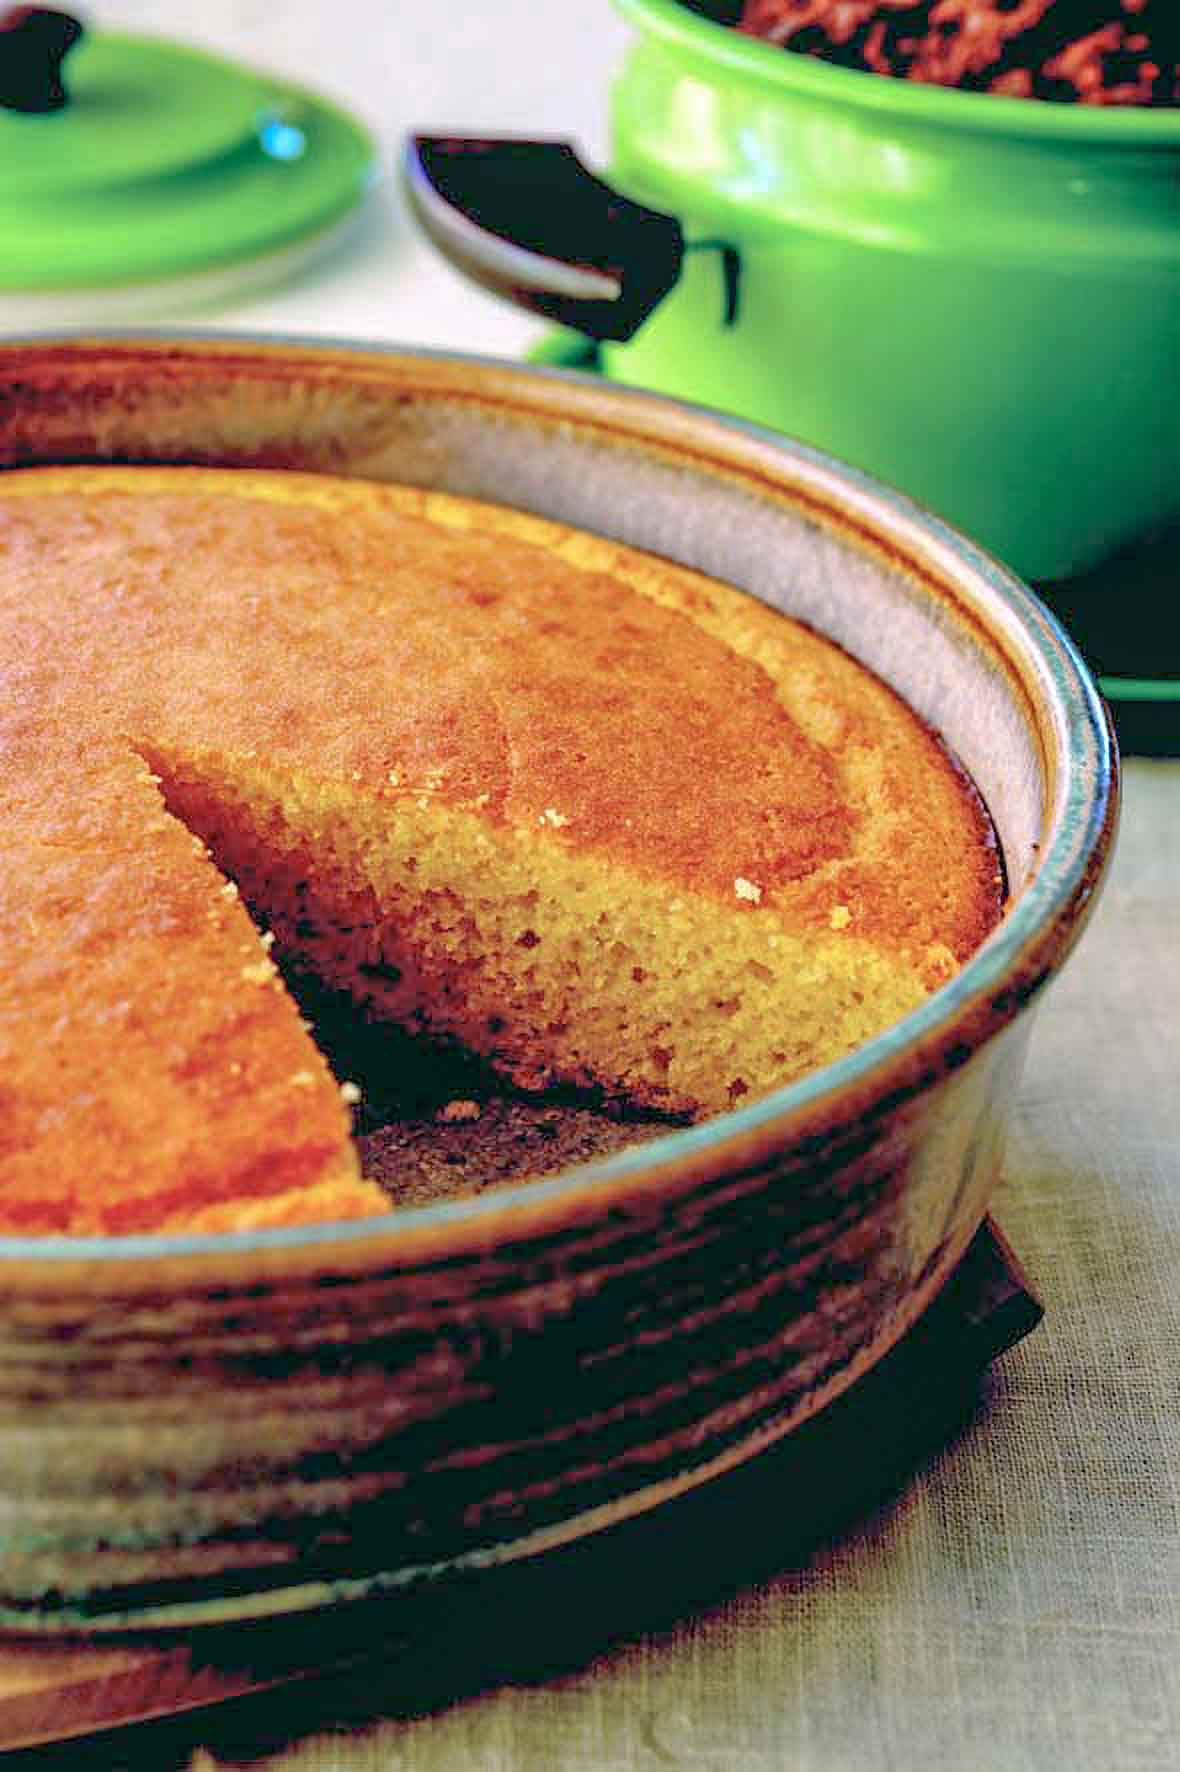 A cake pan of golden brown cornbread with a slice removed